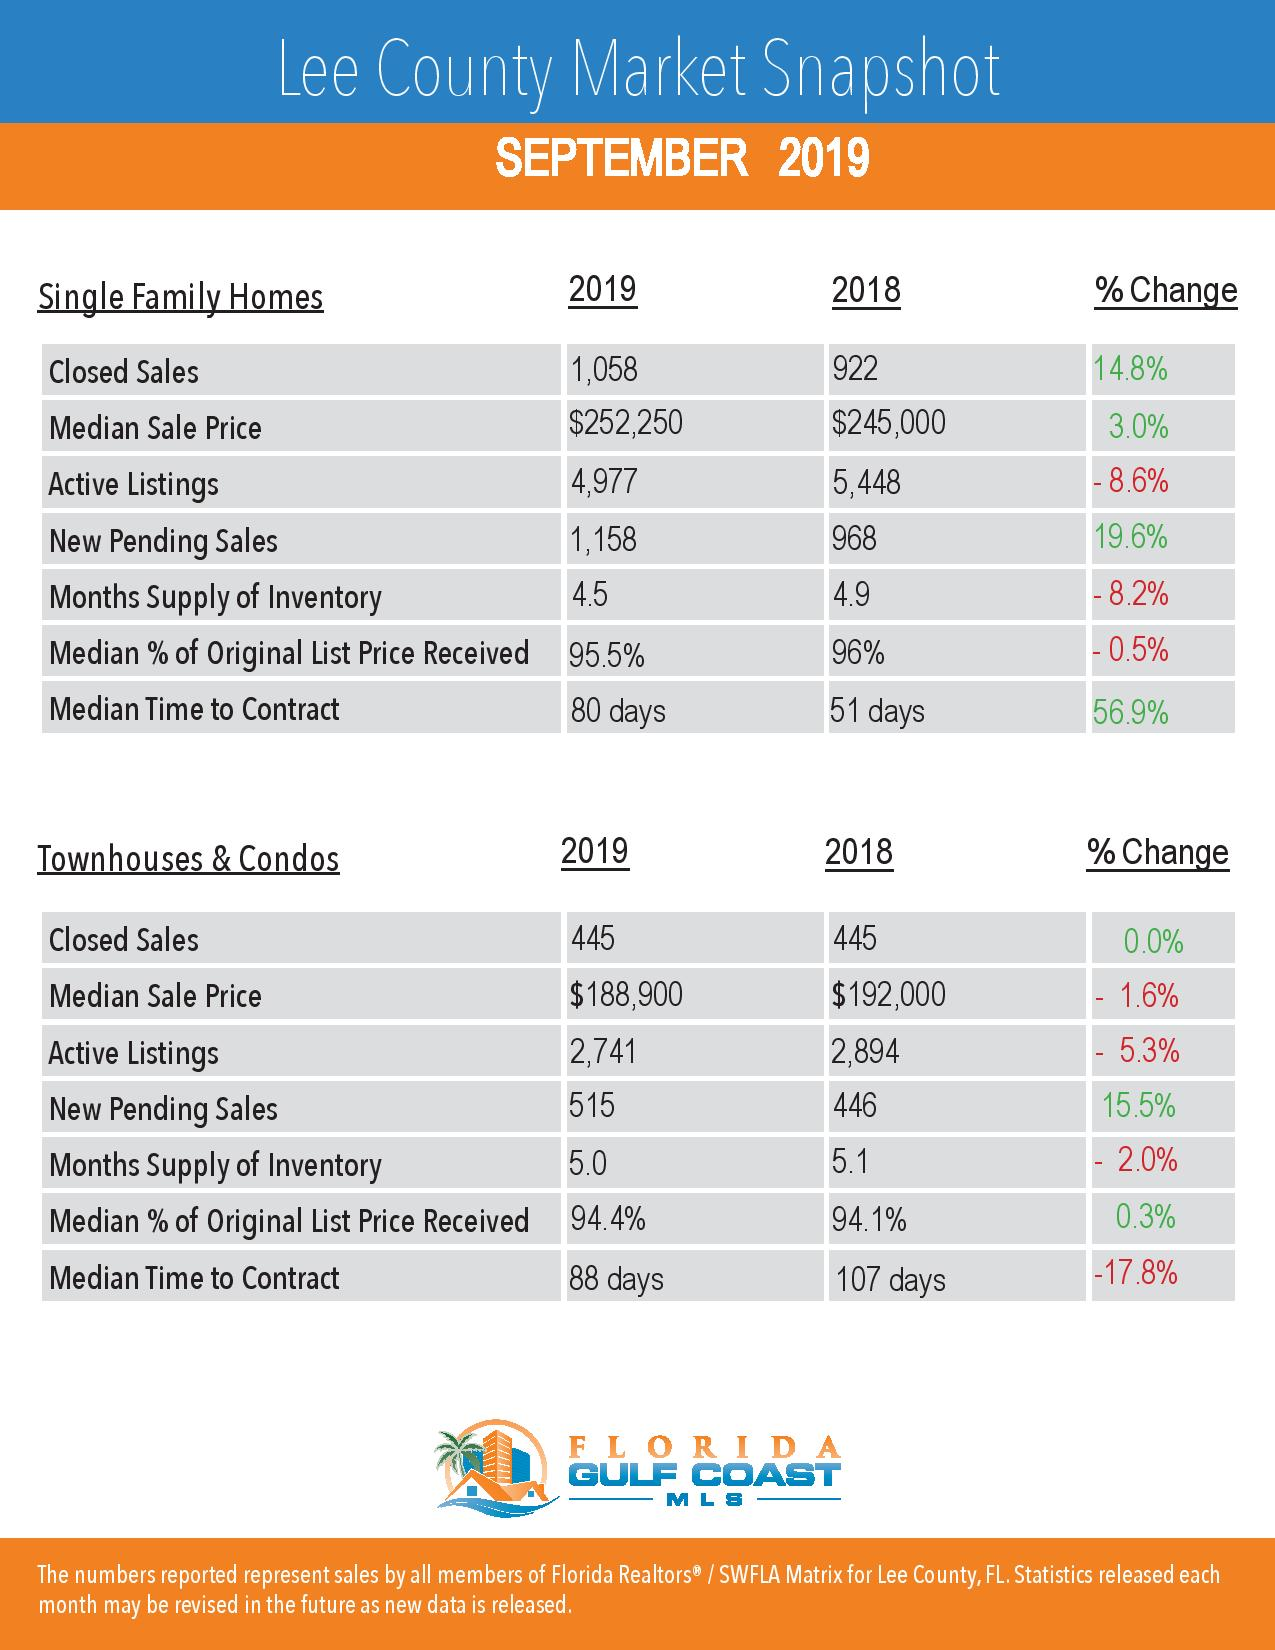 Lee County Housing Market Overview